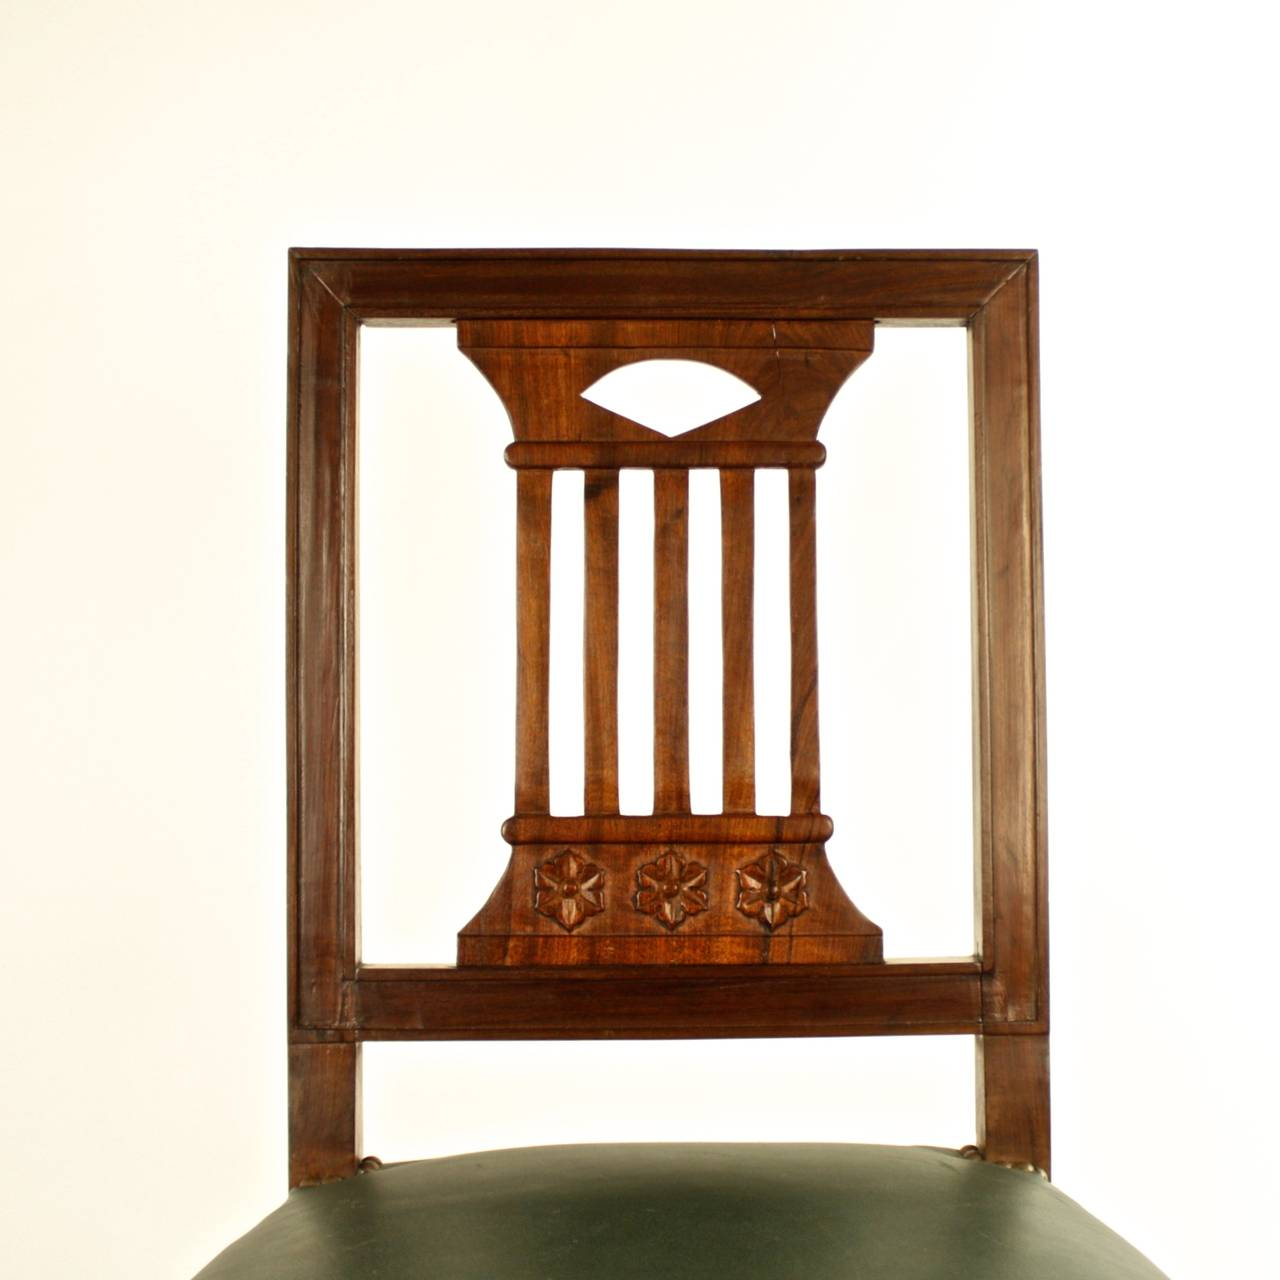 Directoire Pair of Early 19th Century Chairs, in the manner of Bellange frere, circa 1810 For Sale